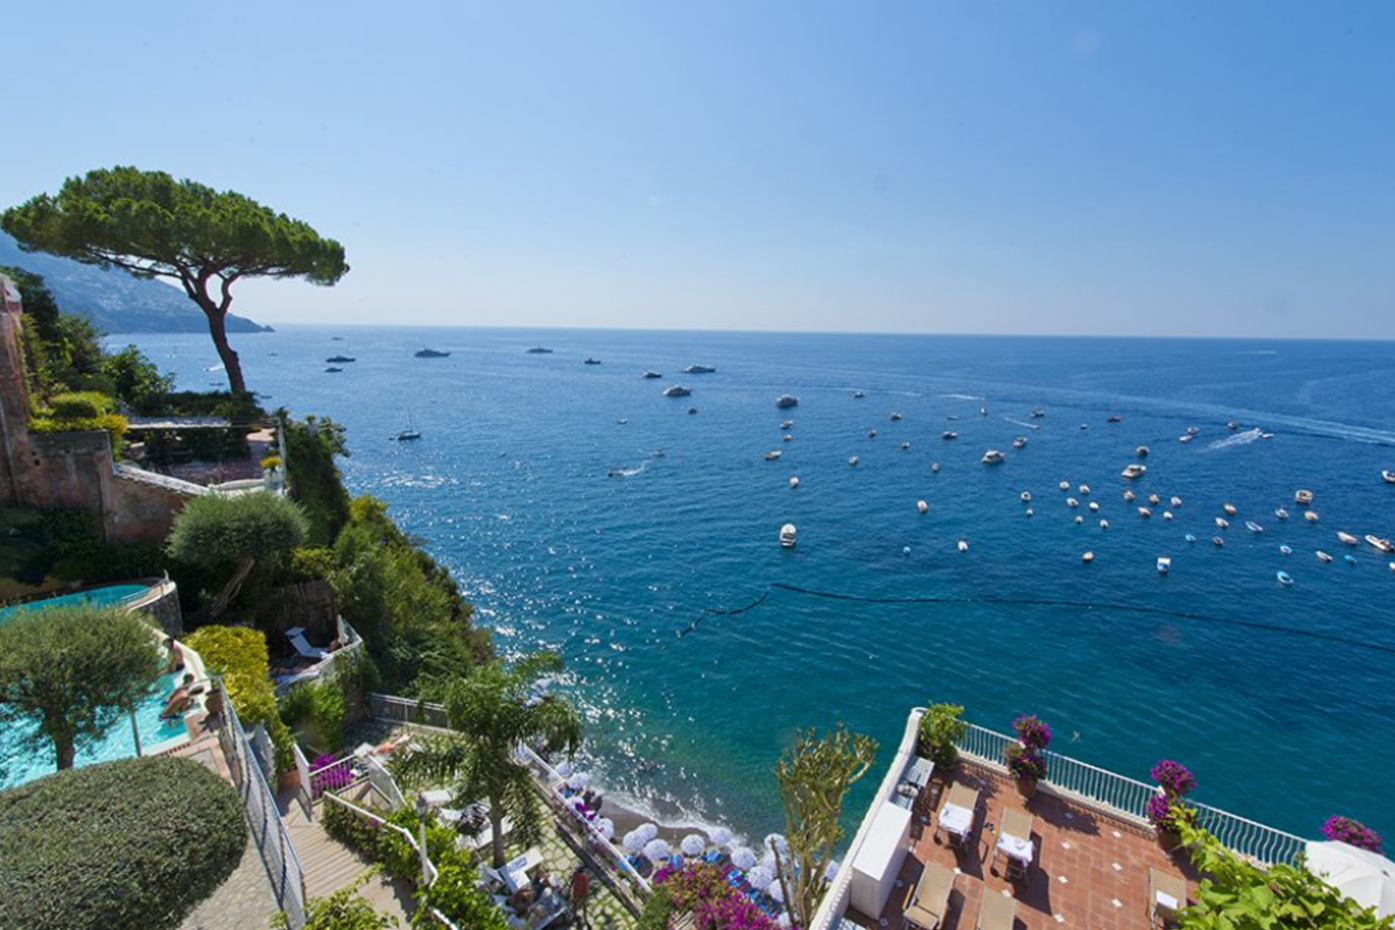 Hotel Emilia, Positano - A relaxed hotel suitable for intimate weddings or larger celebrations, Hotel Emilia has views across the charming town of Positano.Read More...